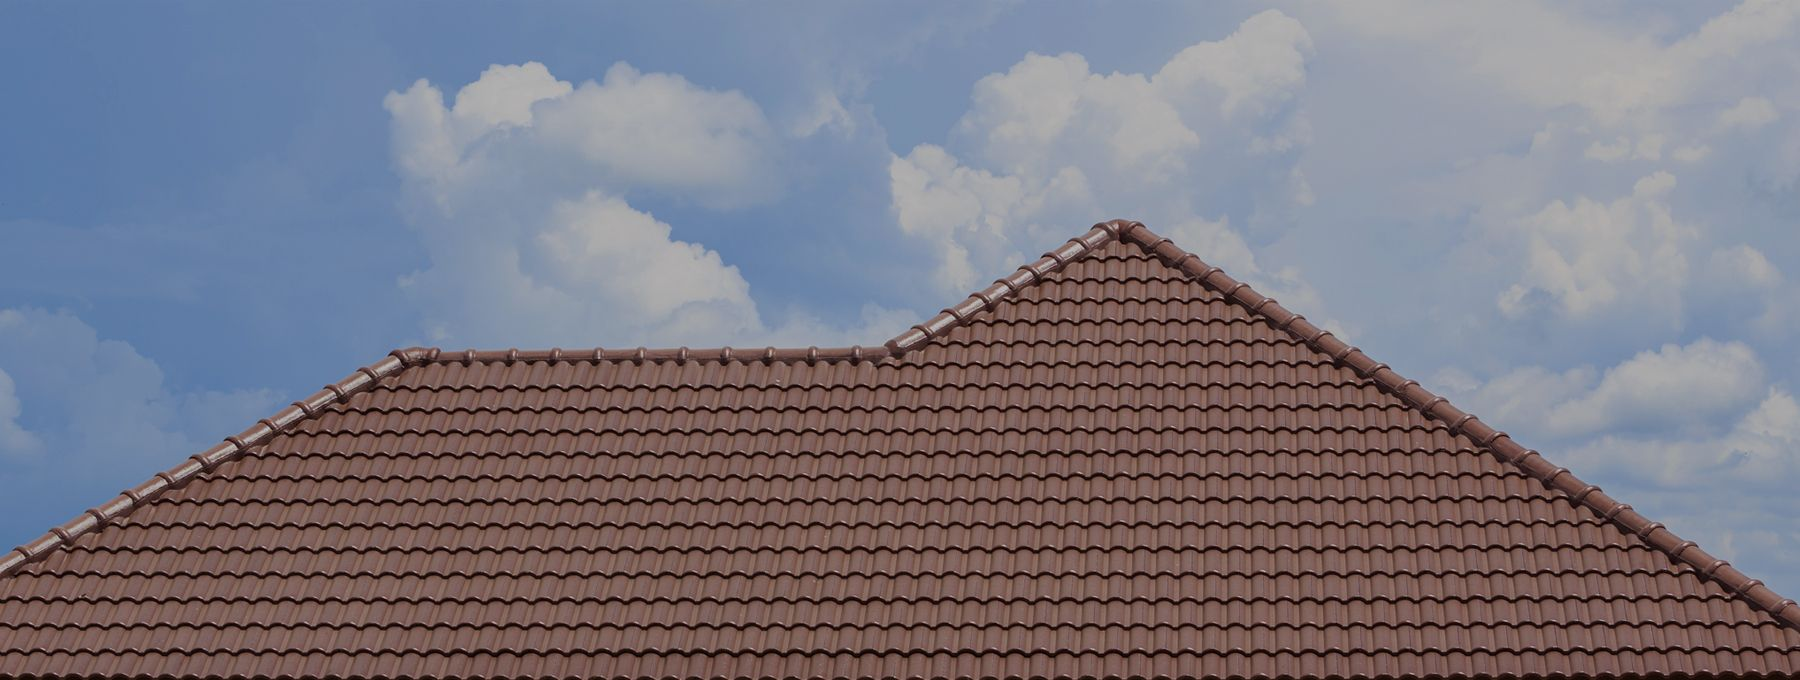 Roof Cleaning Greenville, SC Zap Cleaning Roof repair